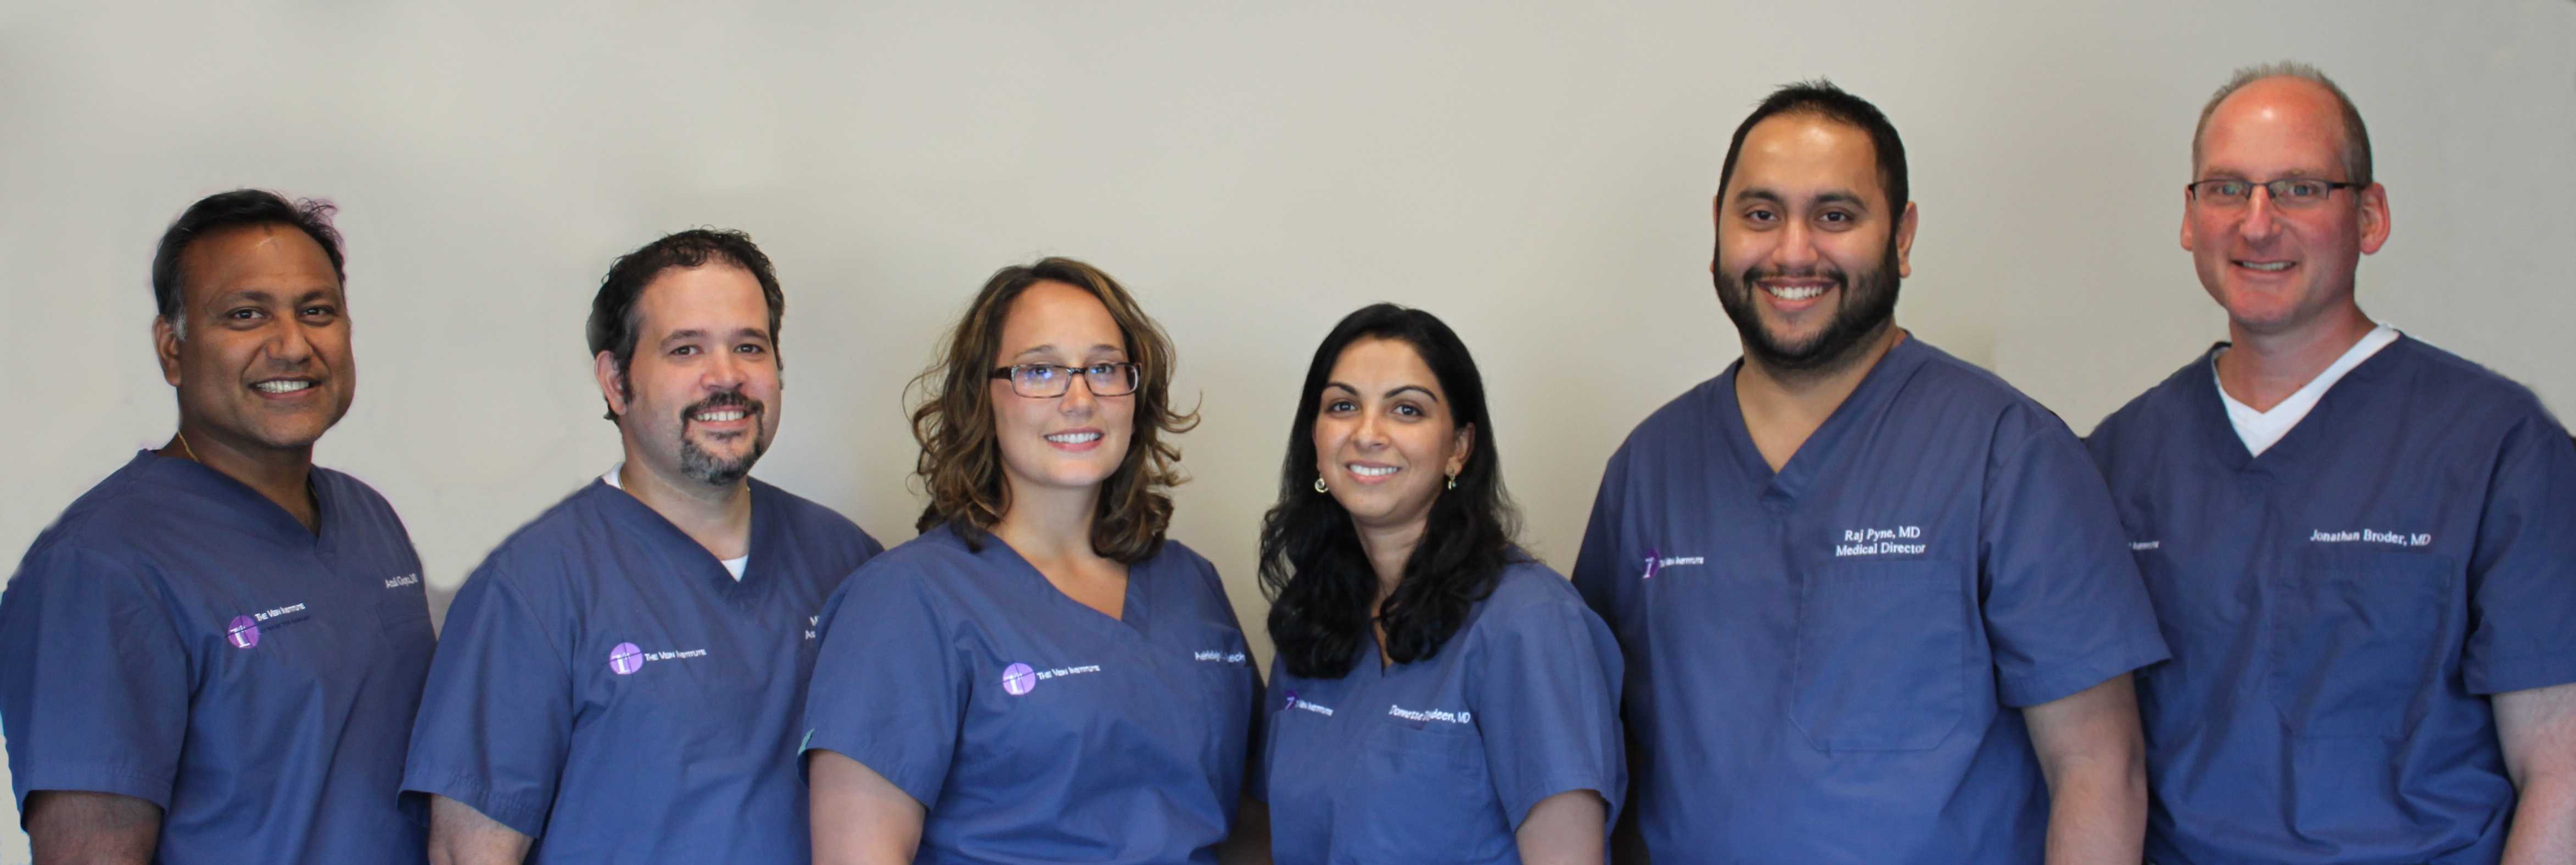 What Sets Interventional Radiologists Apart?